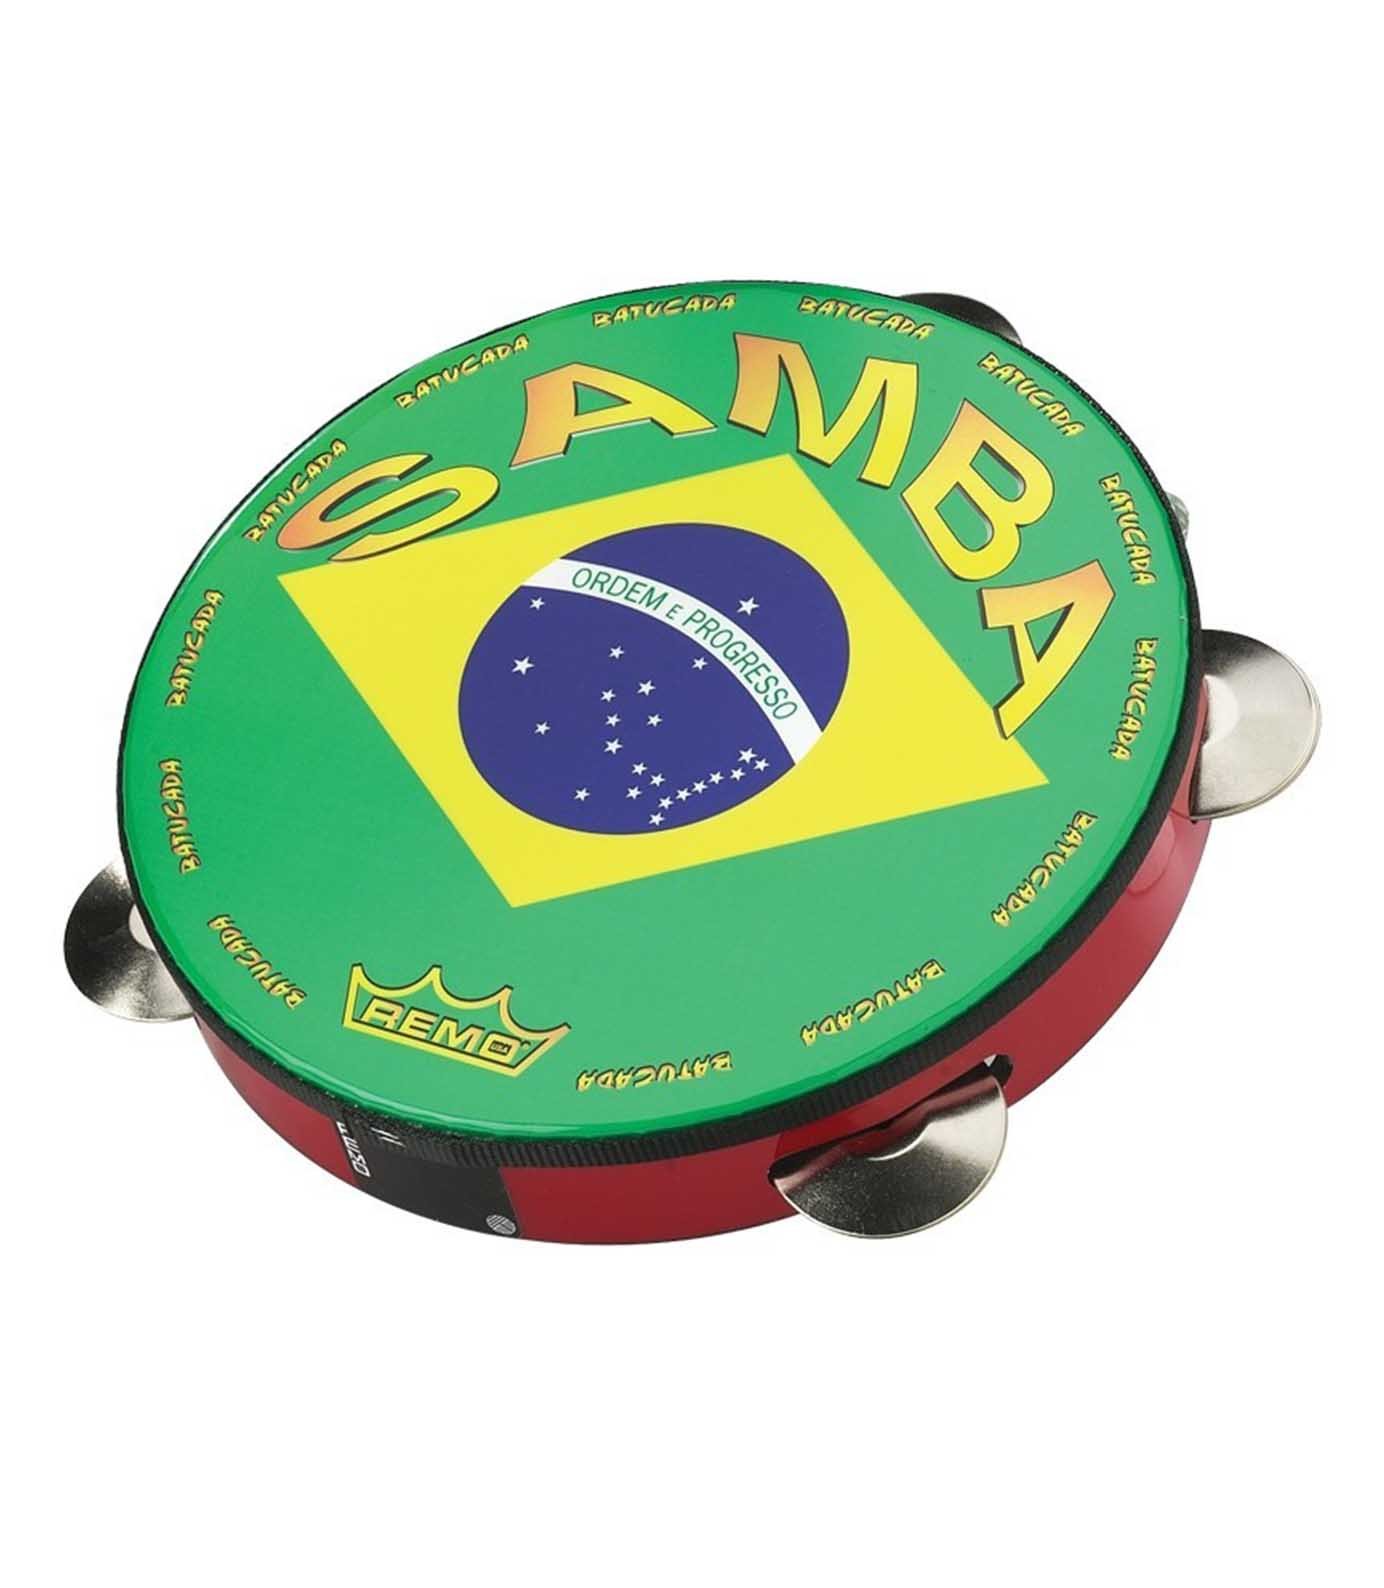 Buy Remo - Valencia Samba Pandeiro Drum Cherry Red 10 inch